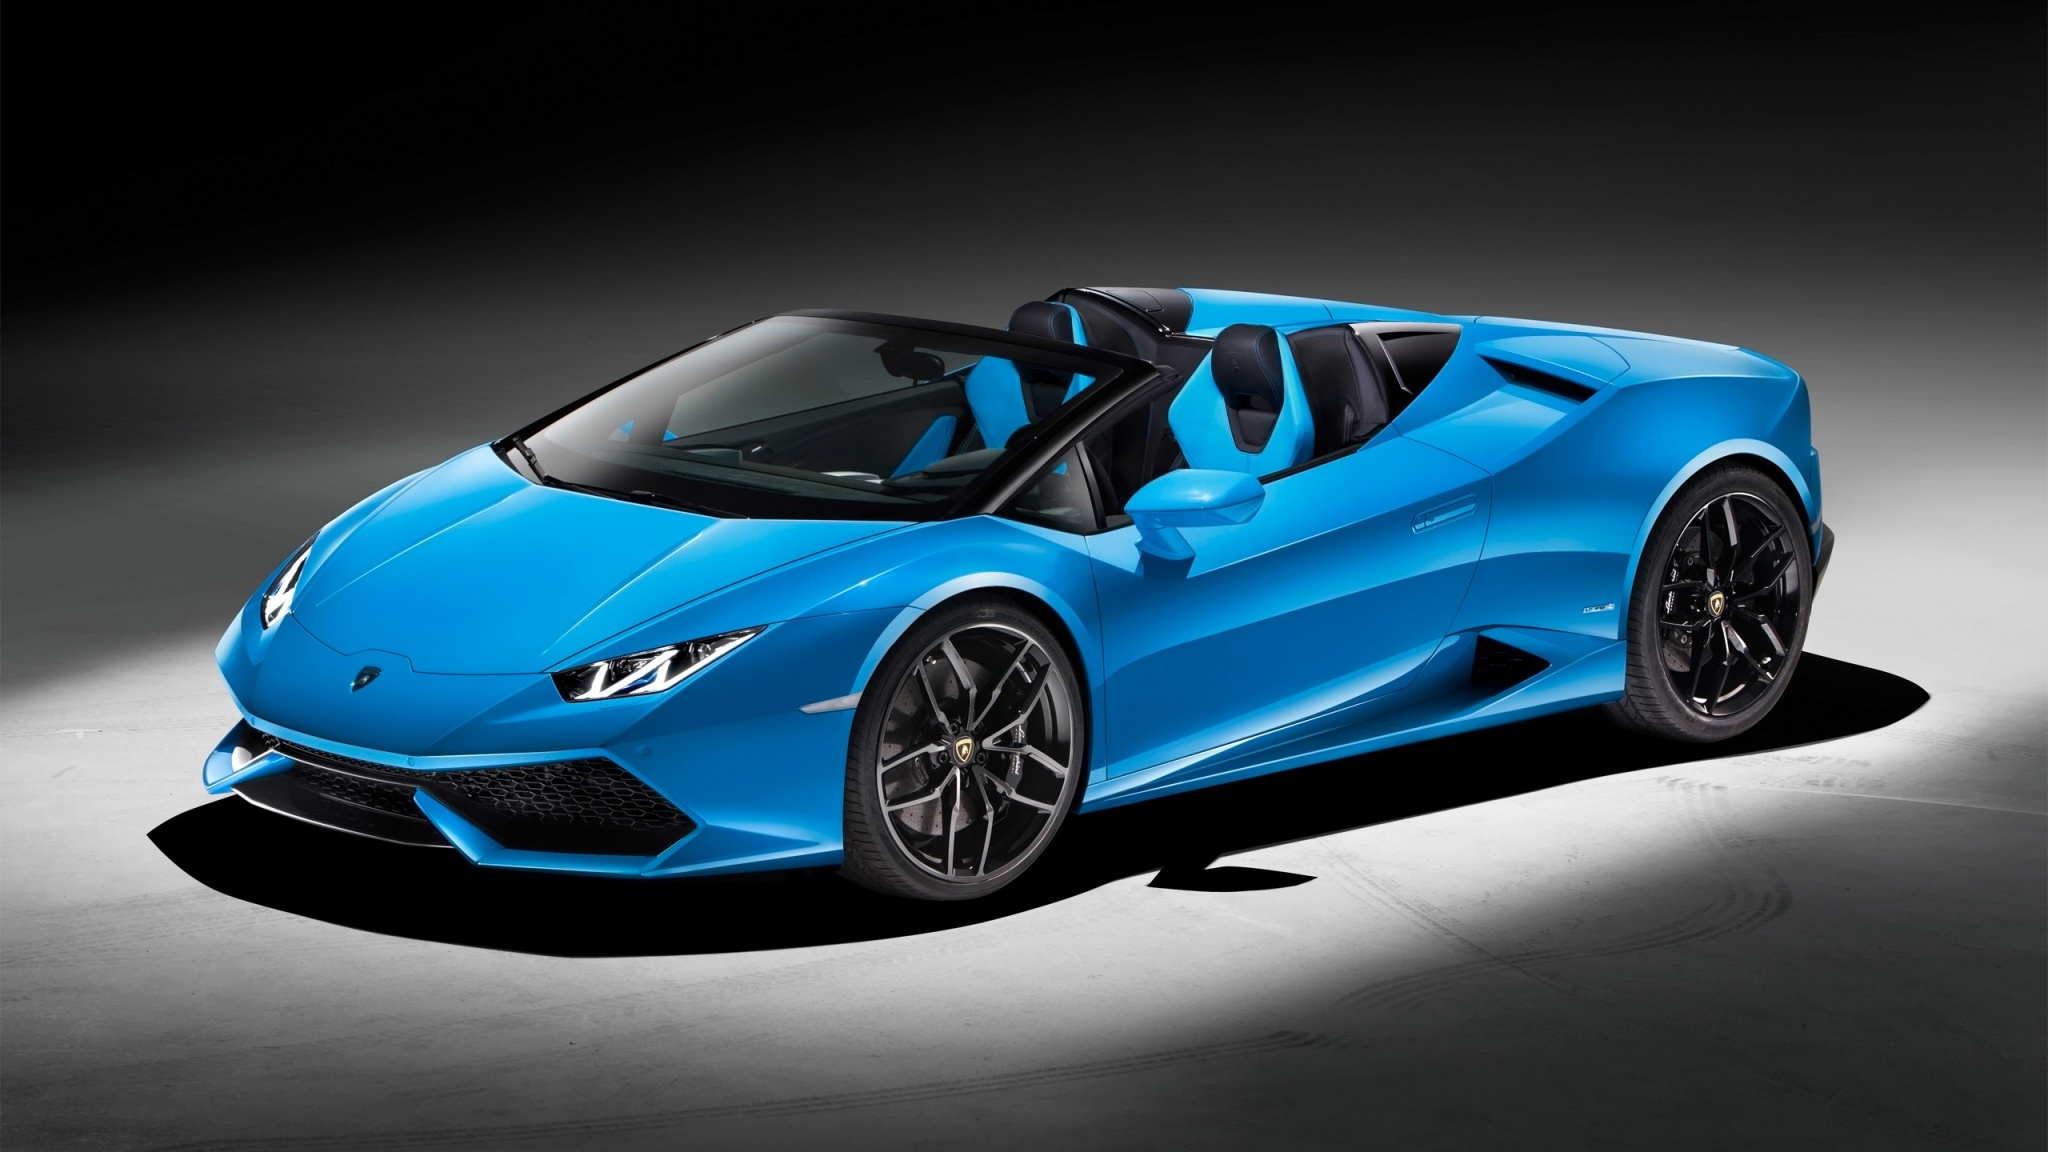 lamborghini huracan lp 610 4 spyder 2016 wallpapers 2048x1152 412295. Black Bedroom Furniture Sets. Home Design Ideas